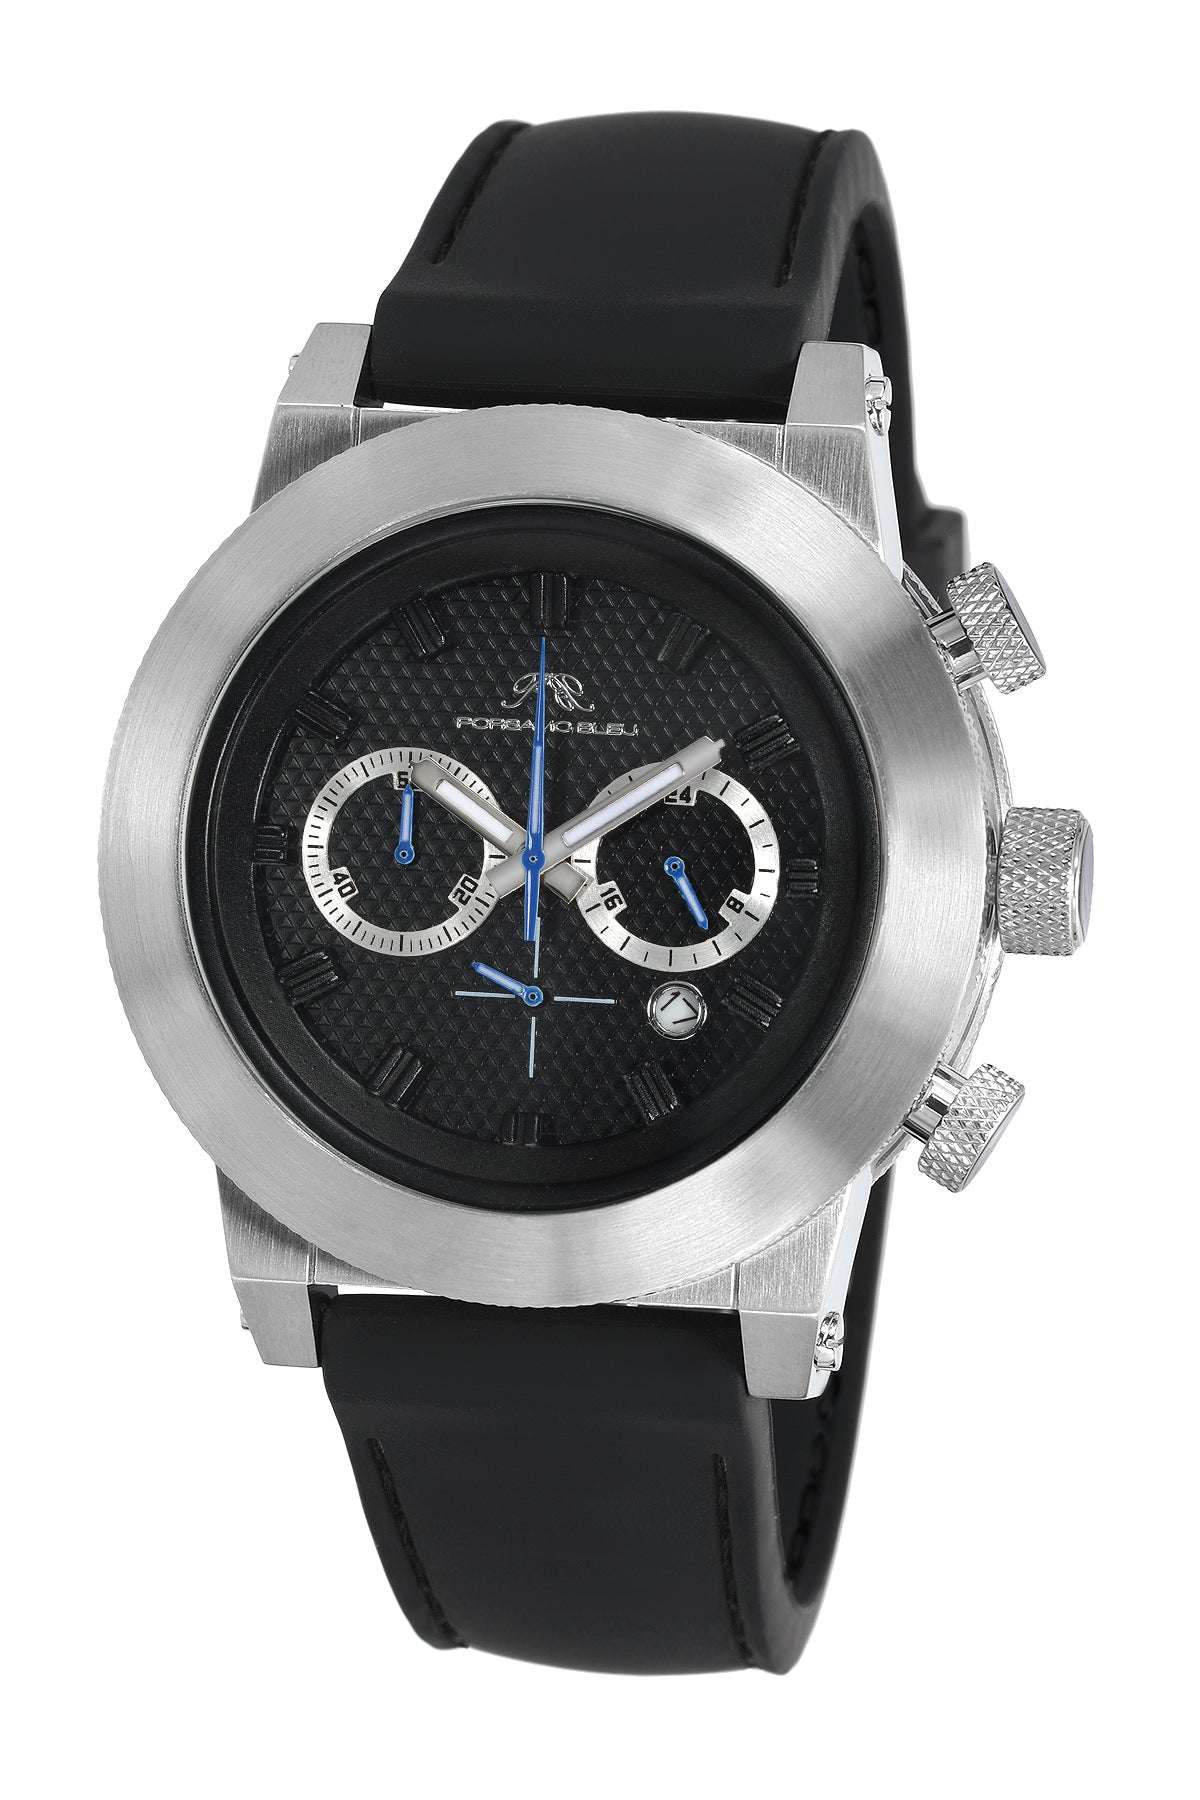 Porsamo Bleu Finley luxury chronograph men's watch, silicone strap, silver, black 401BFIR